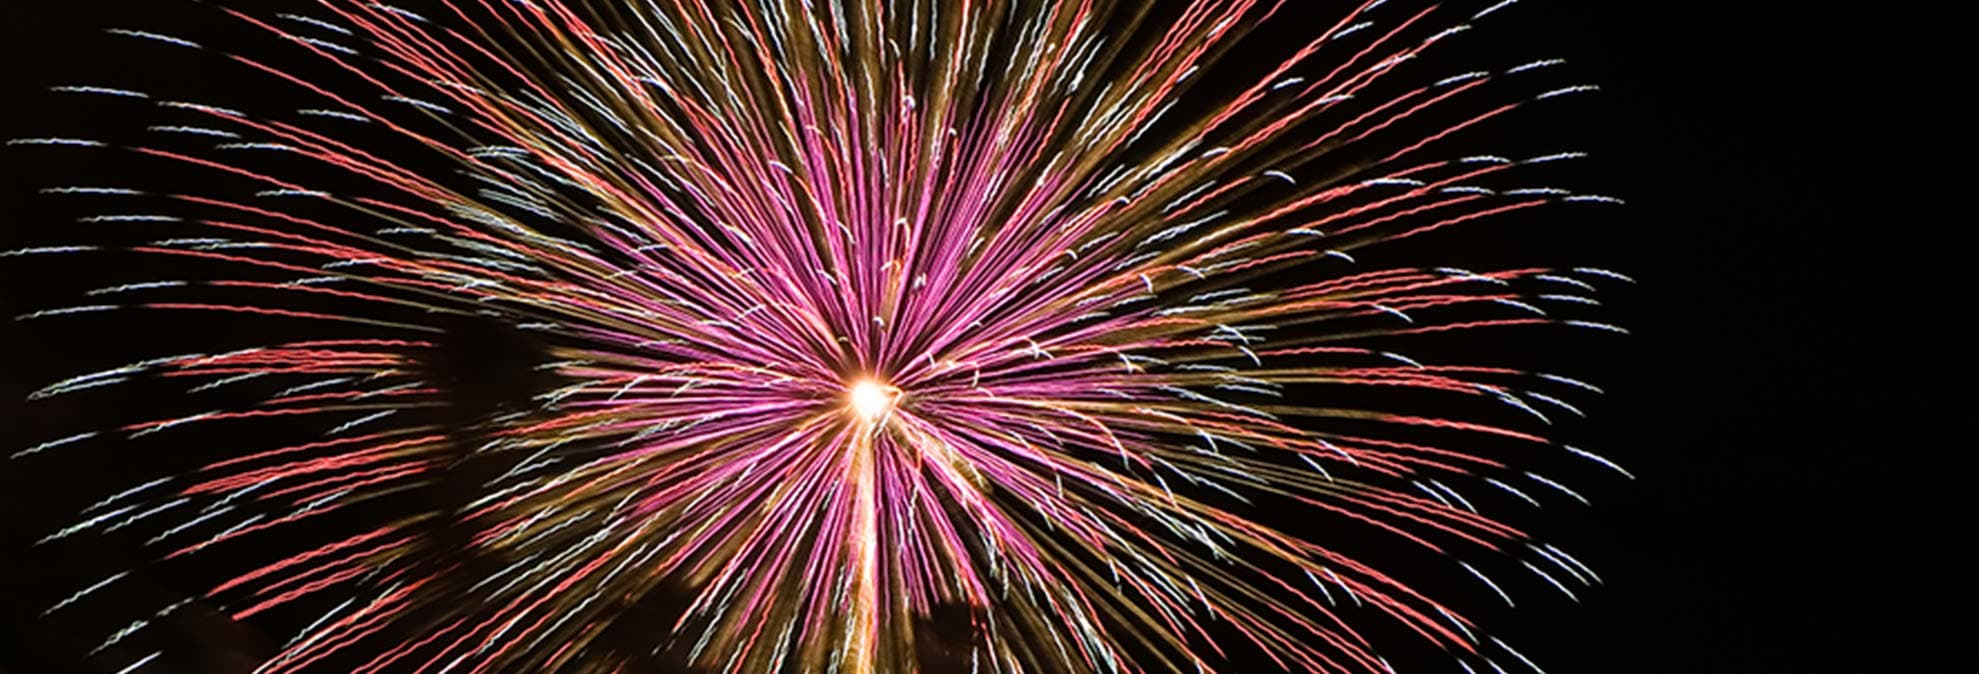 How To Take Stunning Fireworks Photos Consumer Reports